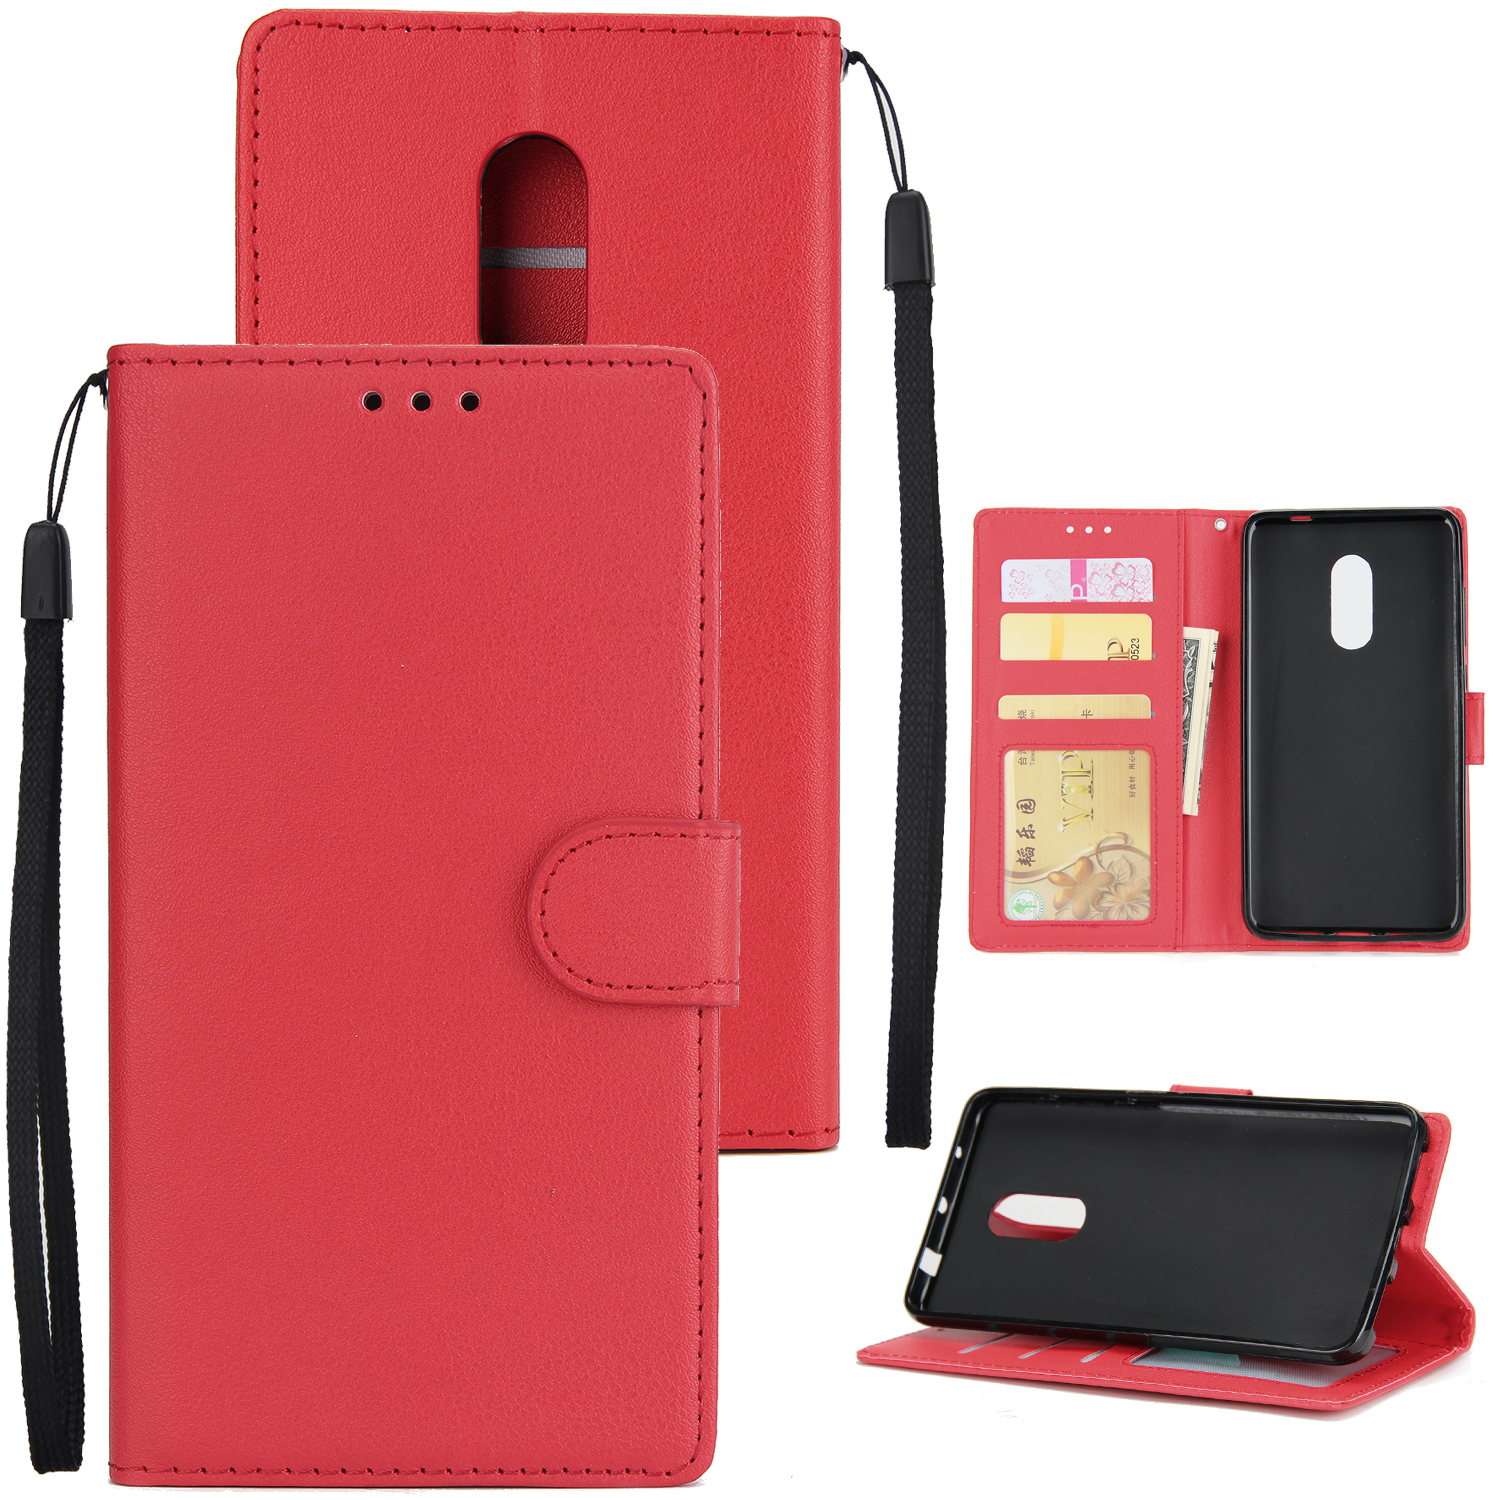 Ultra Slim PU Full Protective Cover Non-slip Shockproof Cell Phone Case with Card Slot for Xiaomi Redmi note 4 red